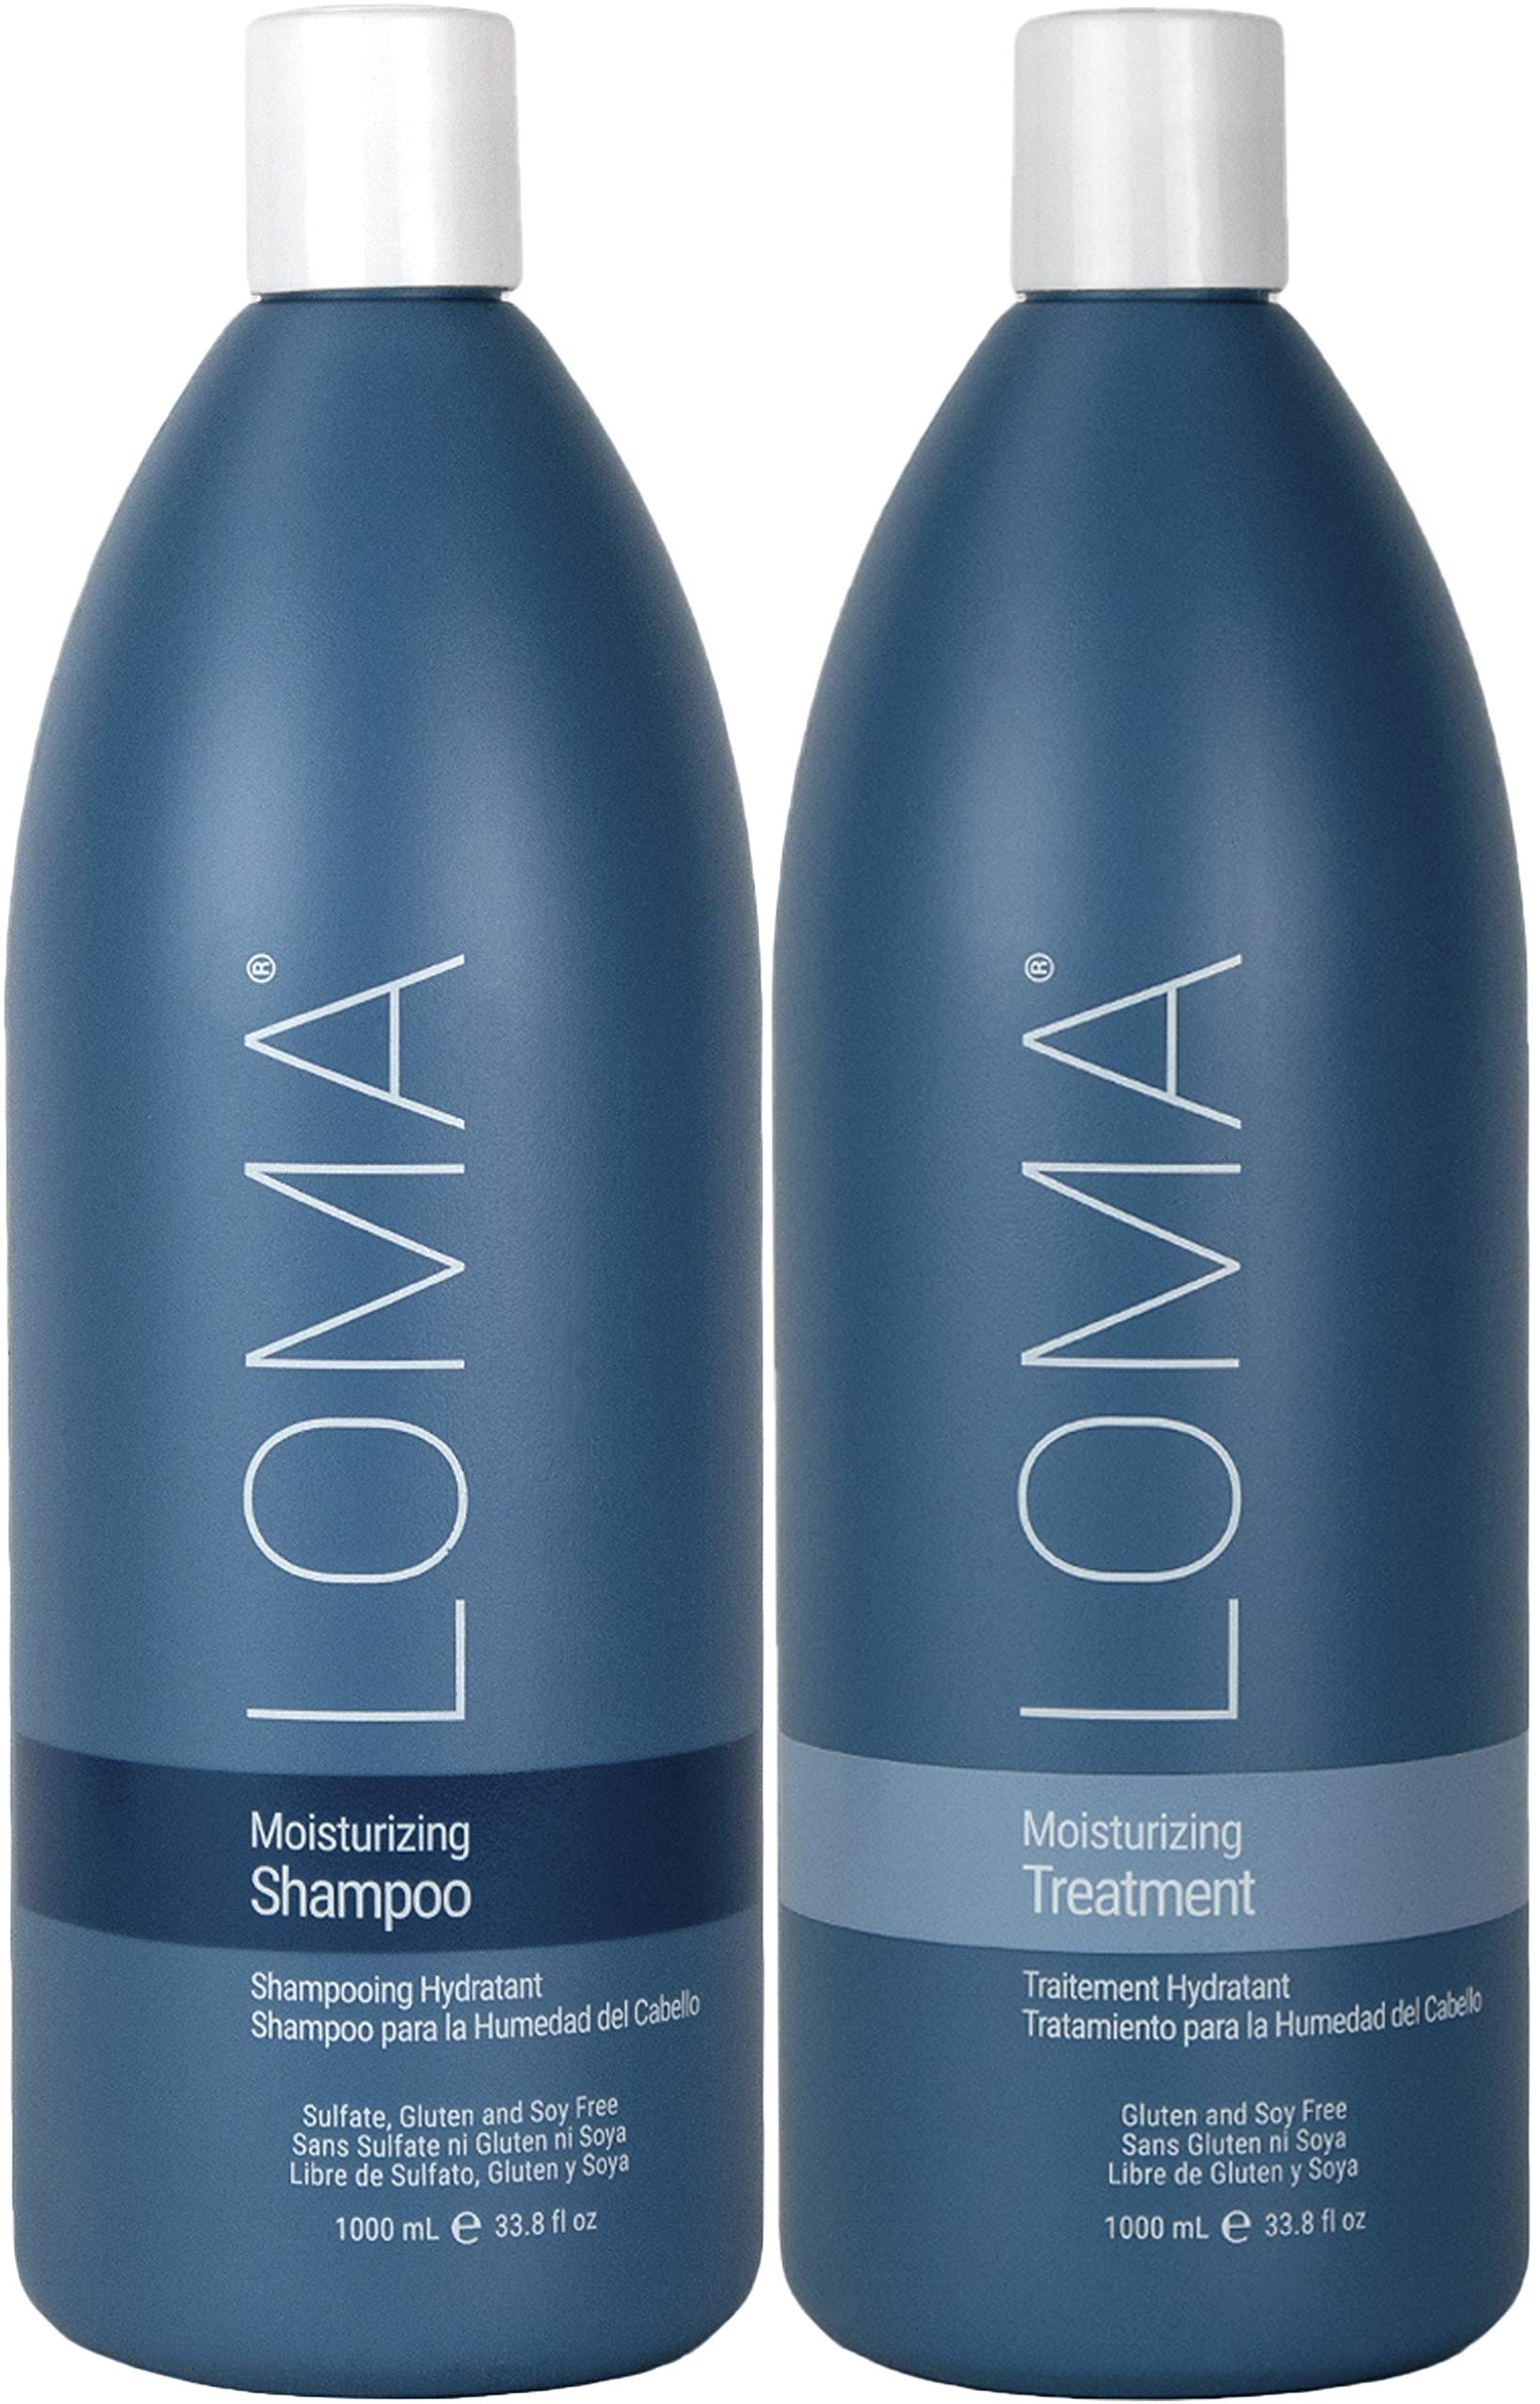 Loma Hair Care Moisturizing Shampoo Moisturizing Treatment Duo, 33 oz, Package may vary by Loma Hair Care